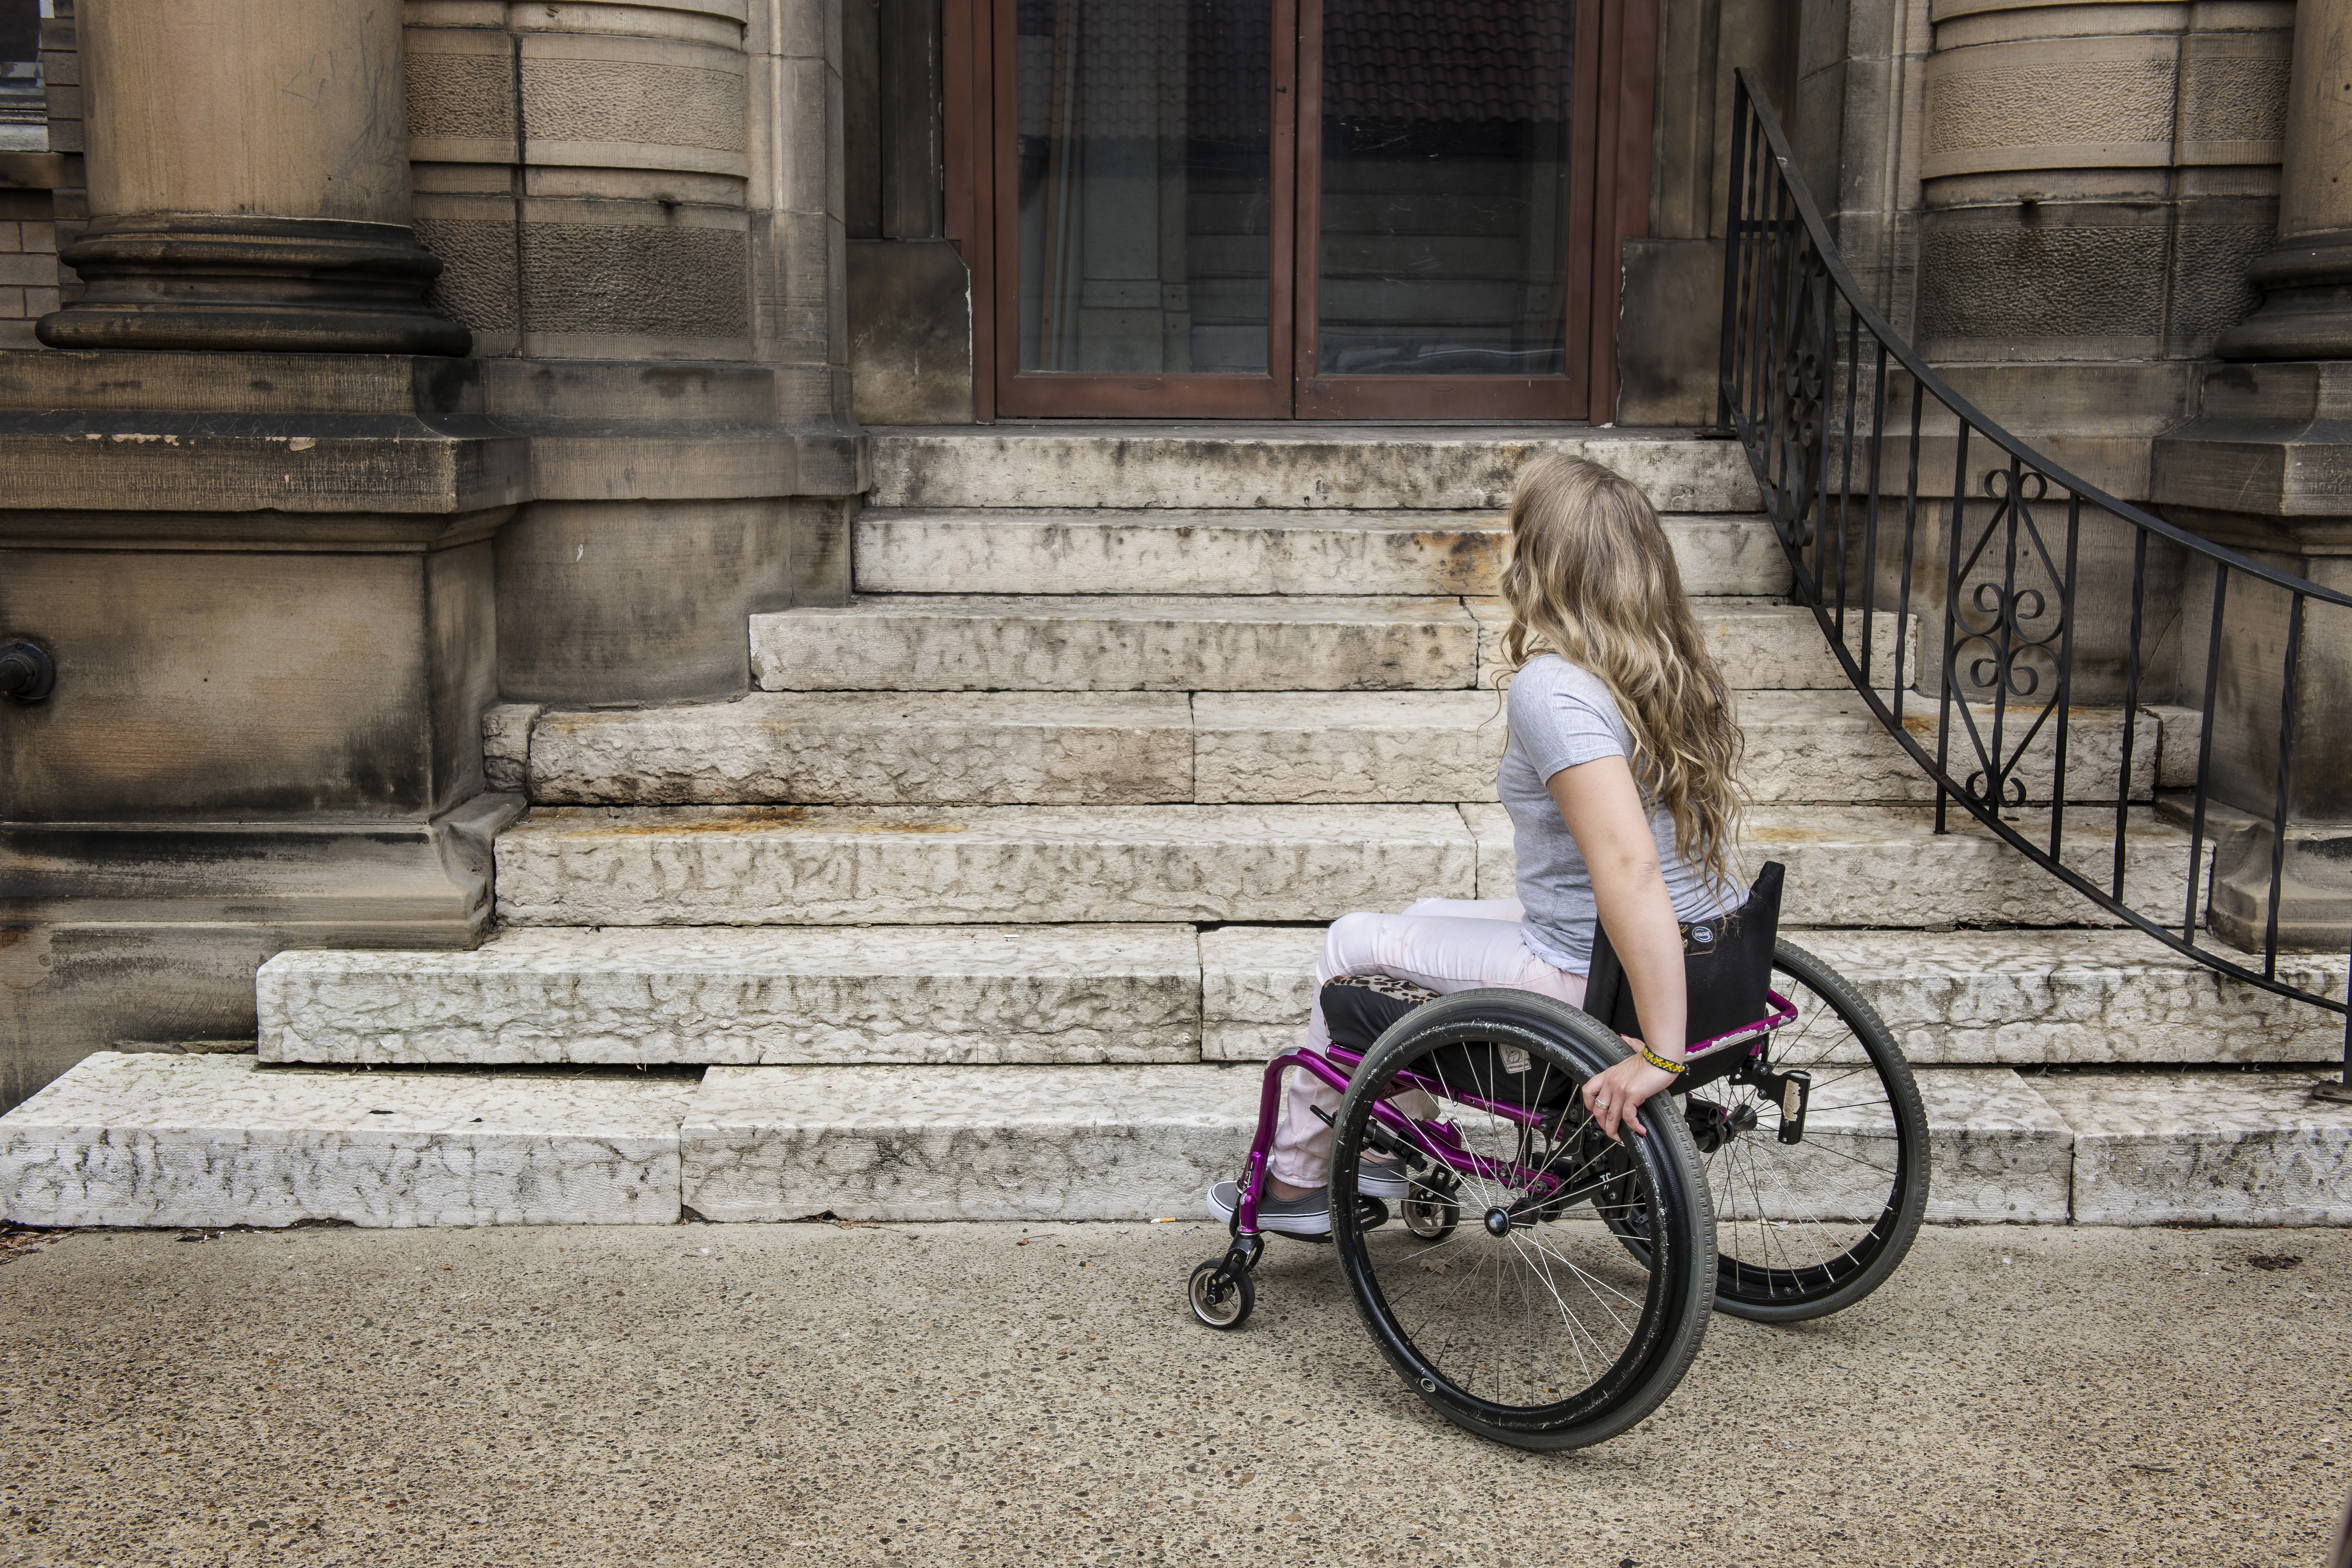 The intersection between disability and mental health is very important